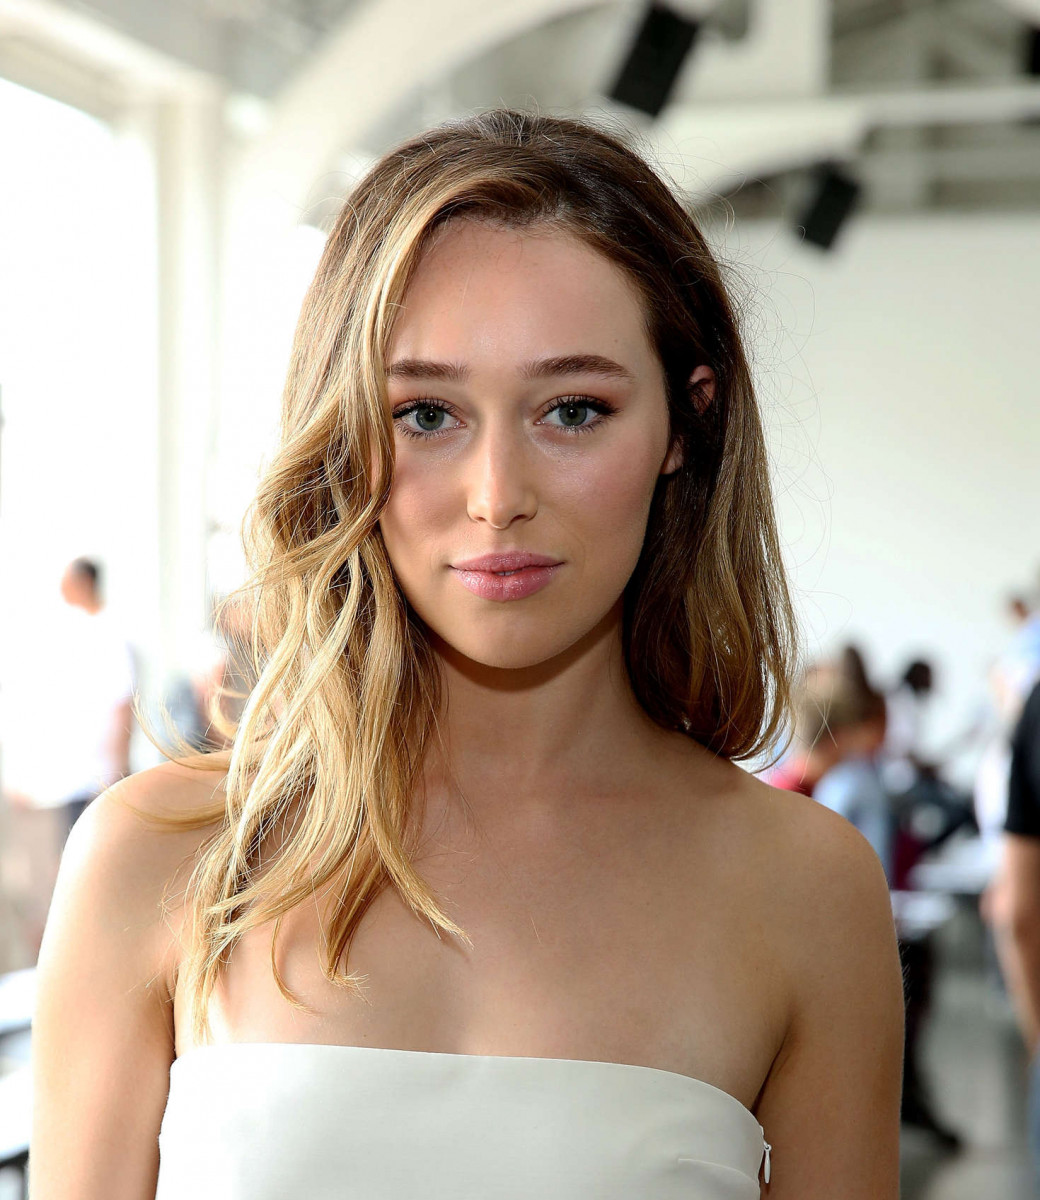 alycia debnam carey hot